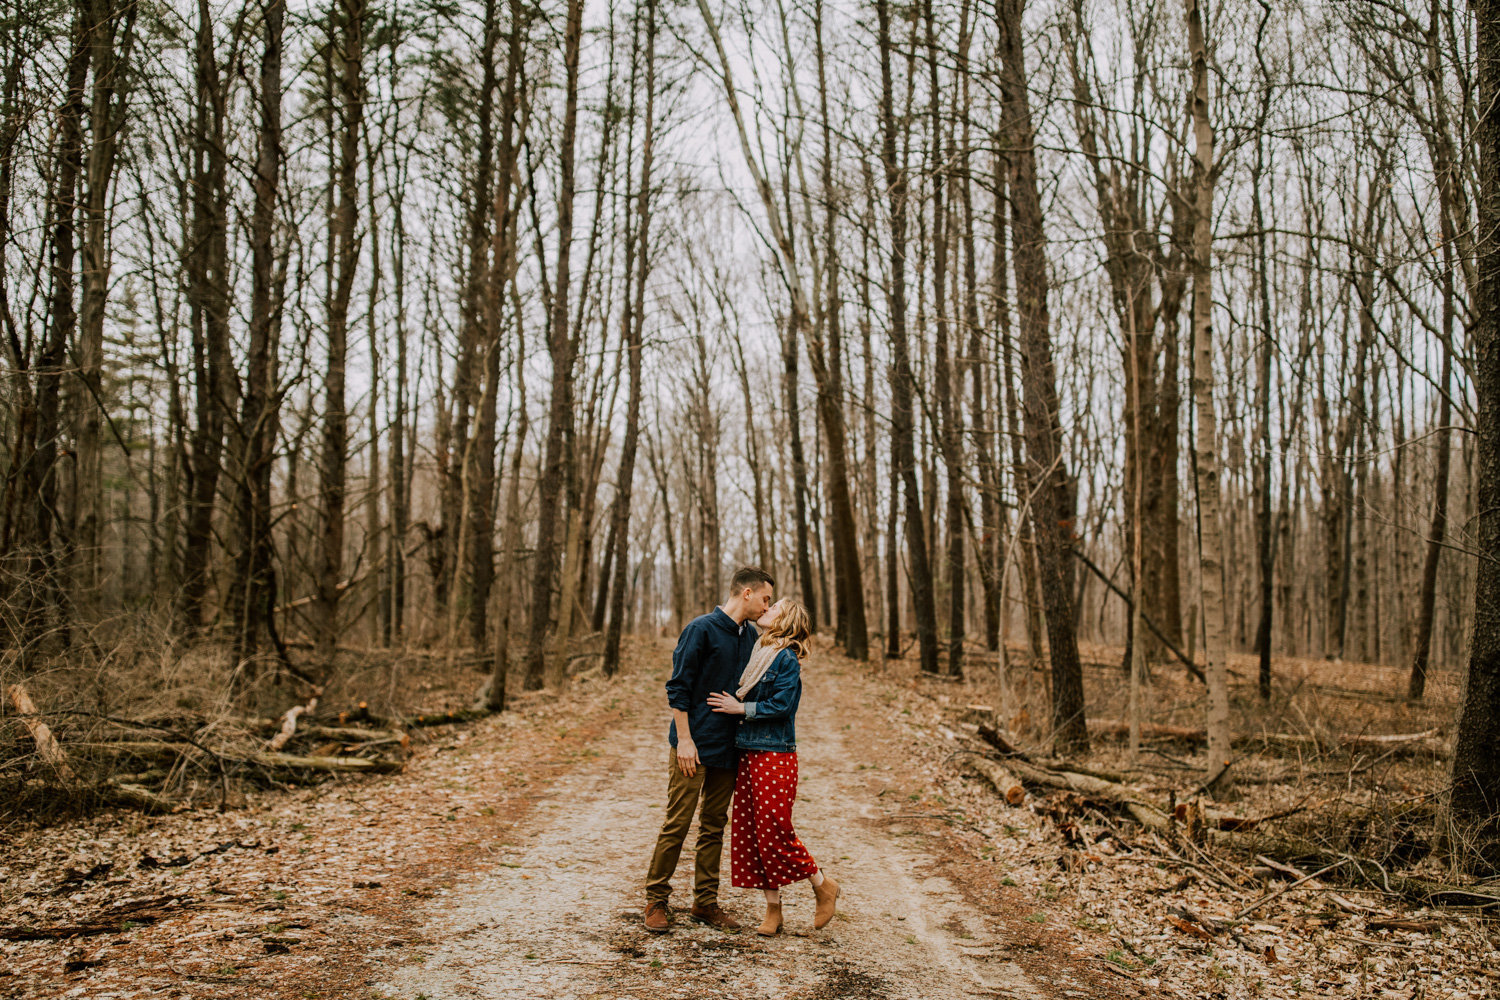 Windy-engagement-session-eagle-creek-state-park-21